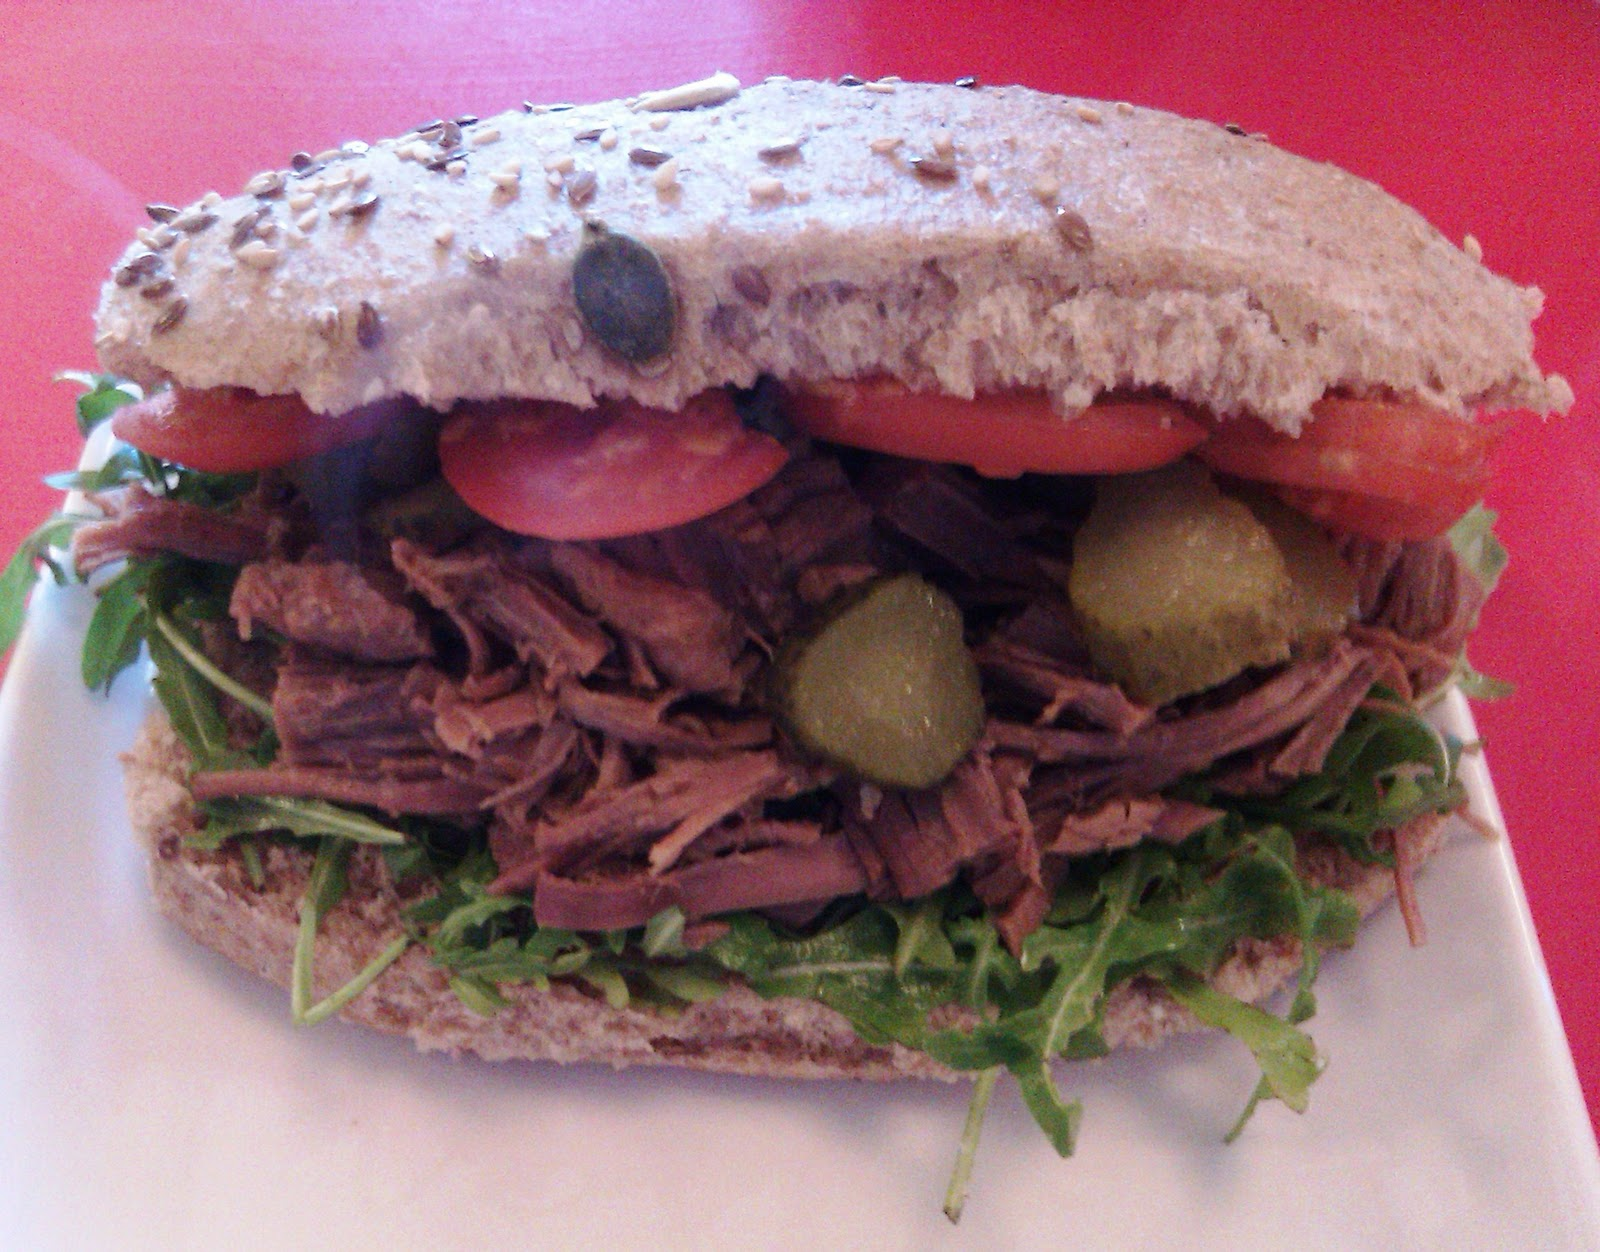 I Opted For The Hot Salt Beef Sandwich A Steal At Only 3 50 As It Was A Monster A Good Monster It Was Generously Packed With Salty Juicy Chunks Of